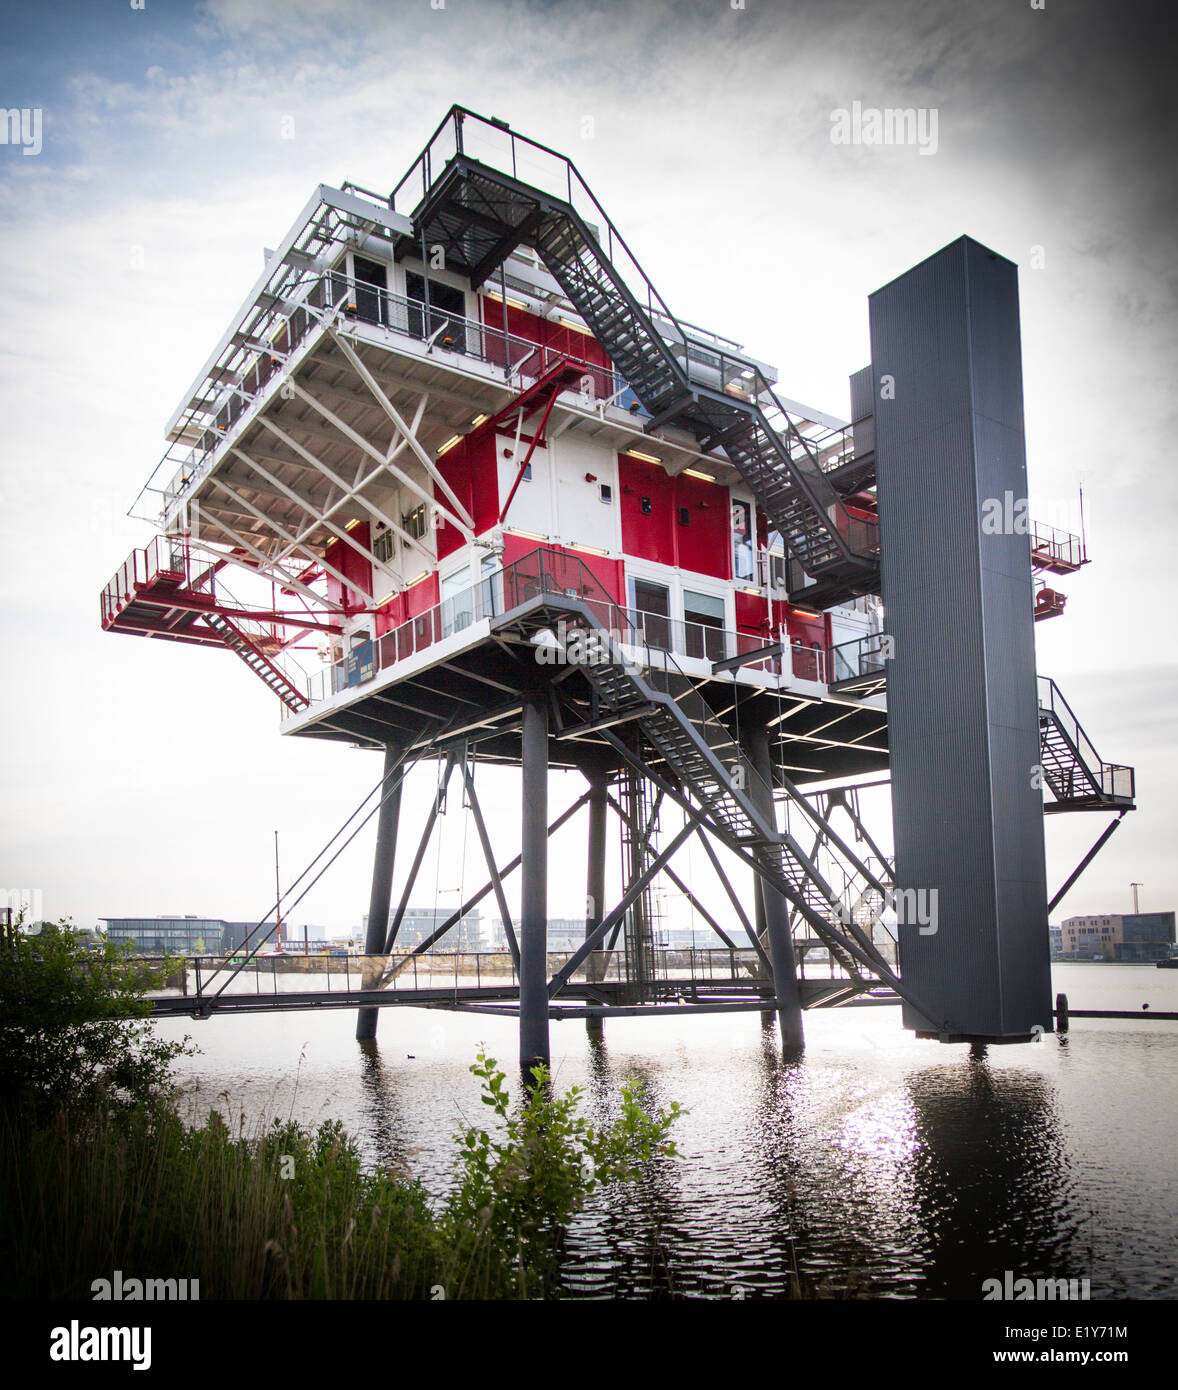 REM Eiland Former North Sea Platform now a restaurant in the Houthavens Amsterdam - Stock Image